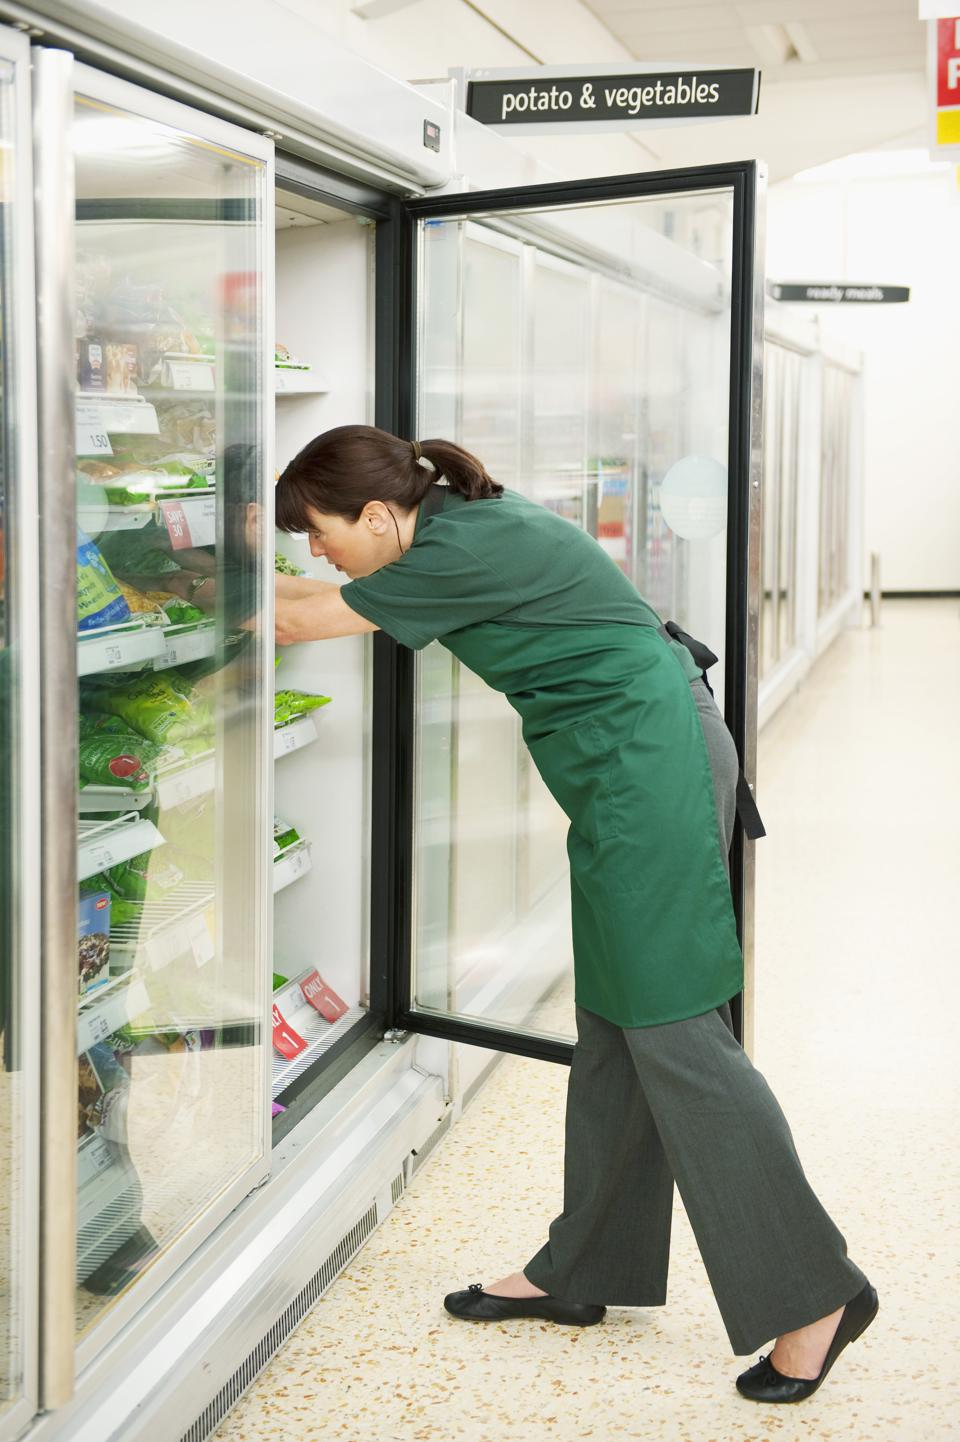 Caucasian worker checking stock in grocery store freezer